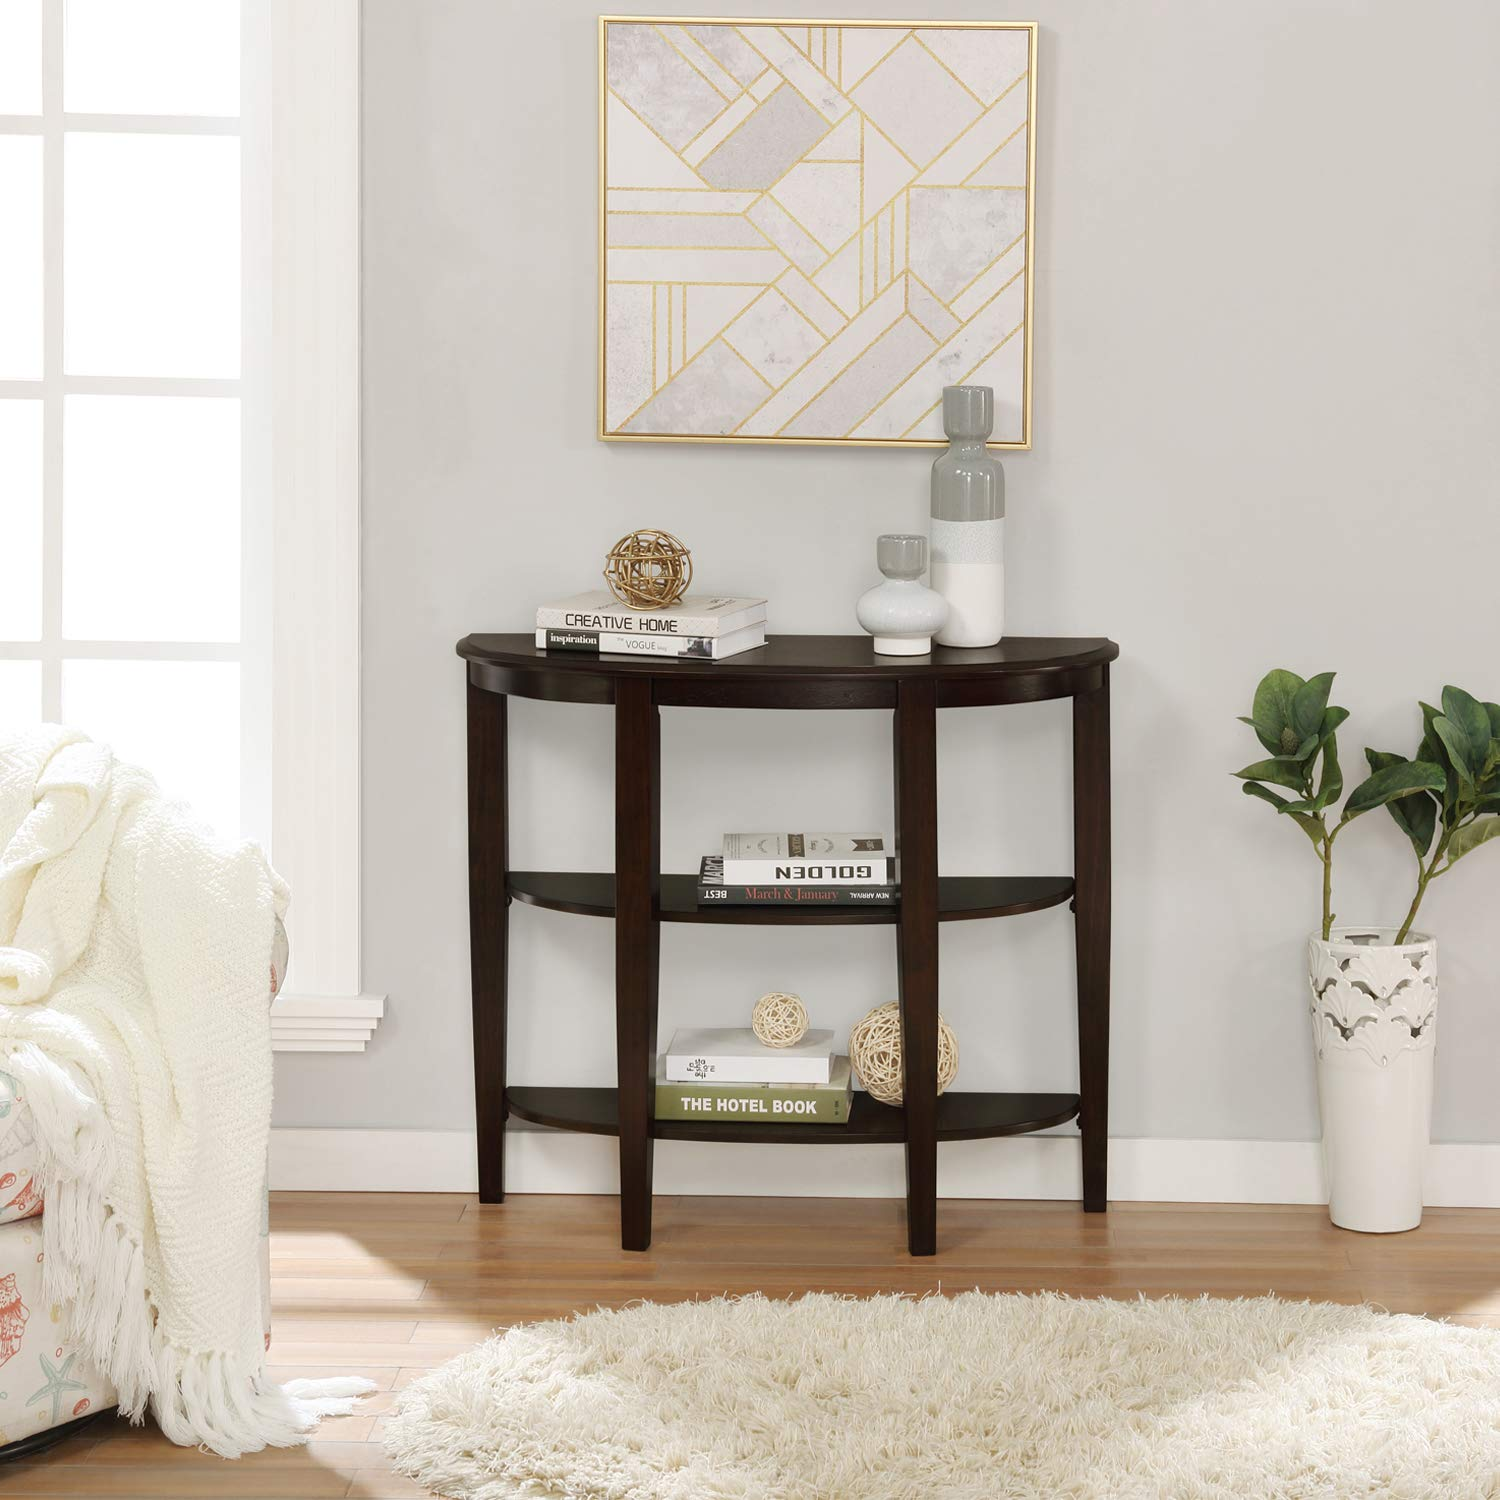 Sofa Table for Entryway